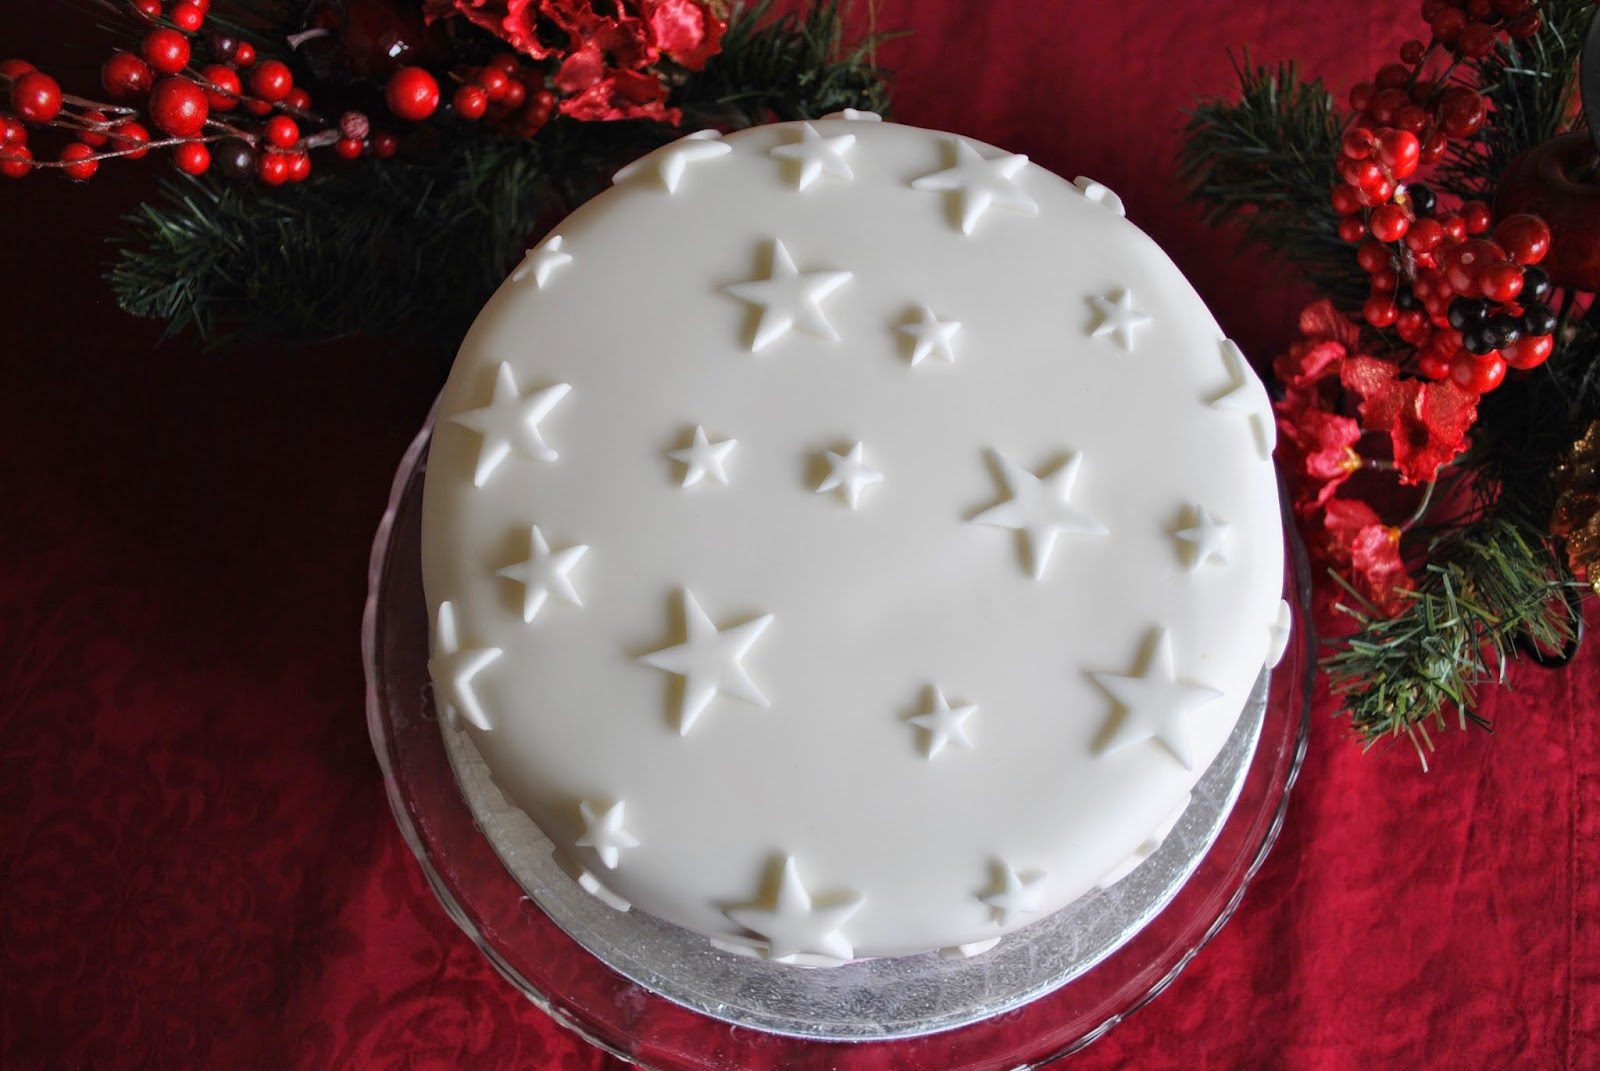 Christmas Cake Decoration With Stars : Christmas Cakes